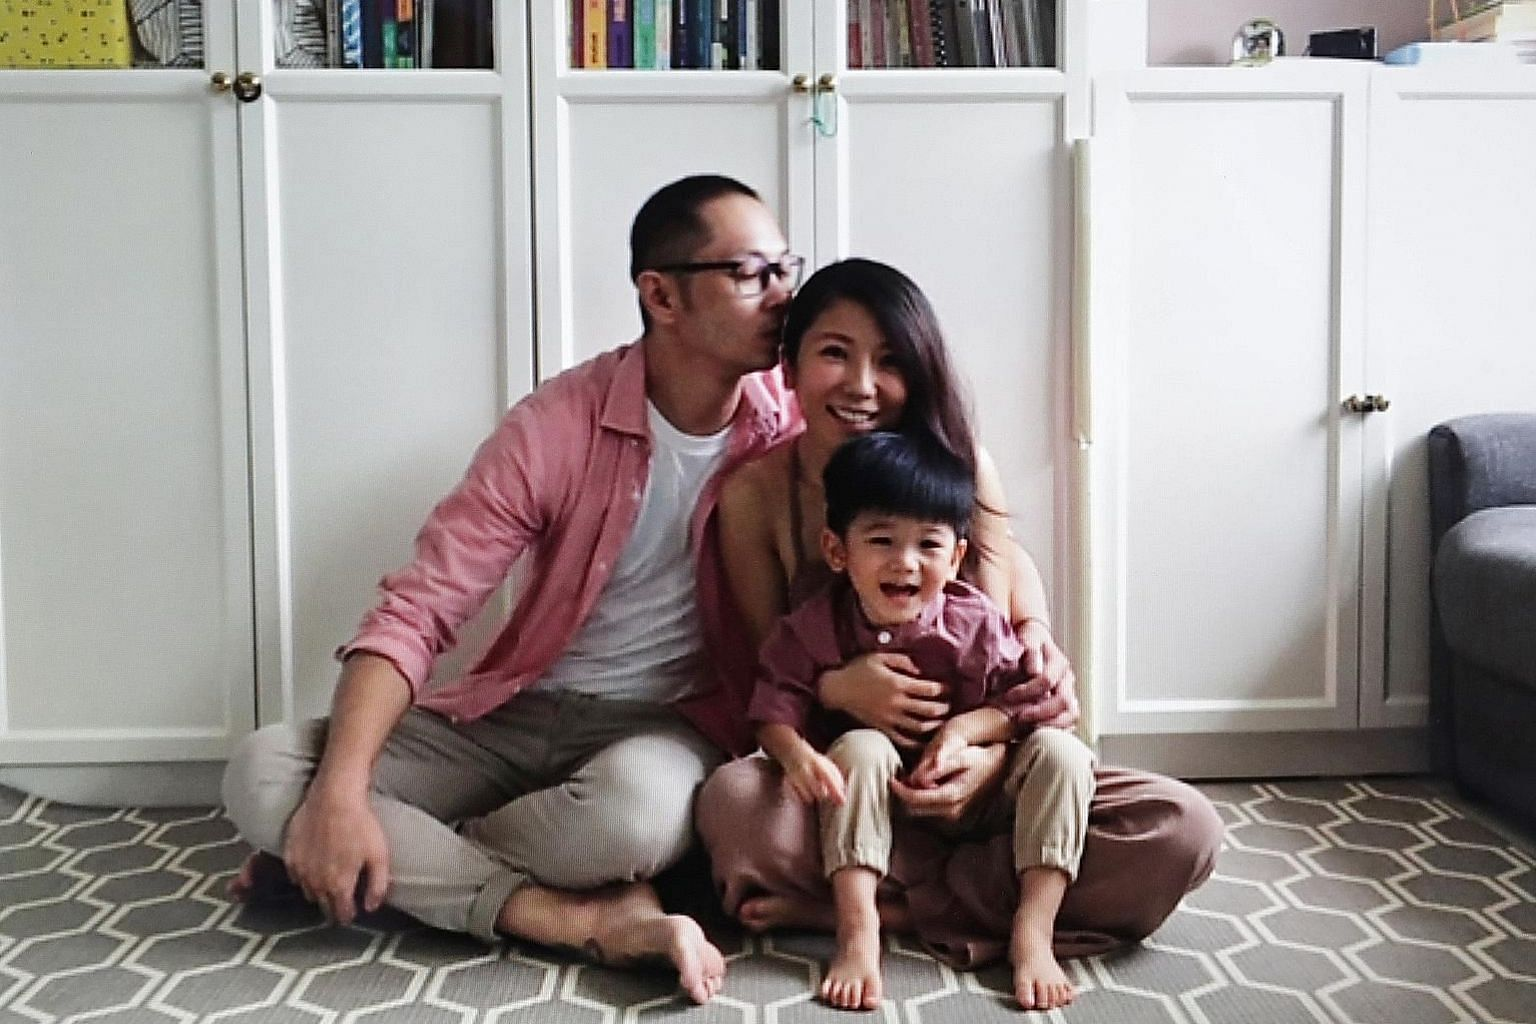 Commercial photographer and film director Nicky Loh and his wife Vivi, with their two-year-old son Nathan. This photograph was shot during a Zoom call. ST PHOTO: NEO XIAOBIN